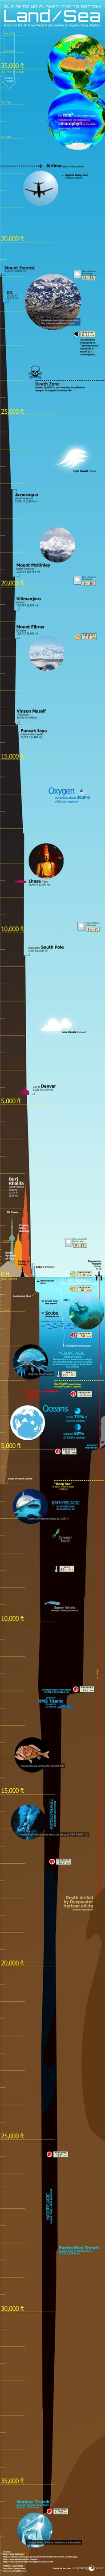 Scaled infographic showing the features of Earth's land surface and oceans.